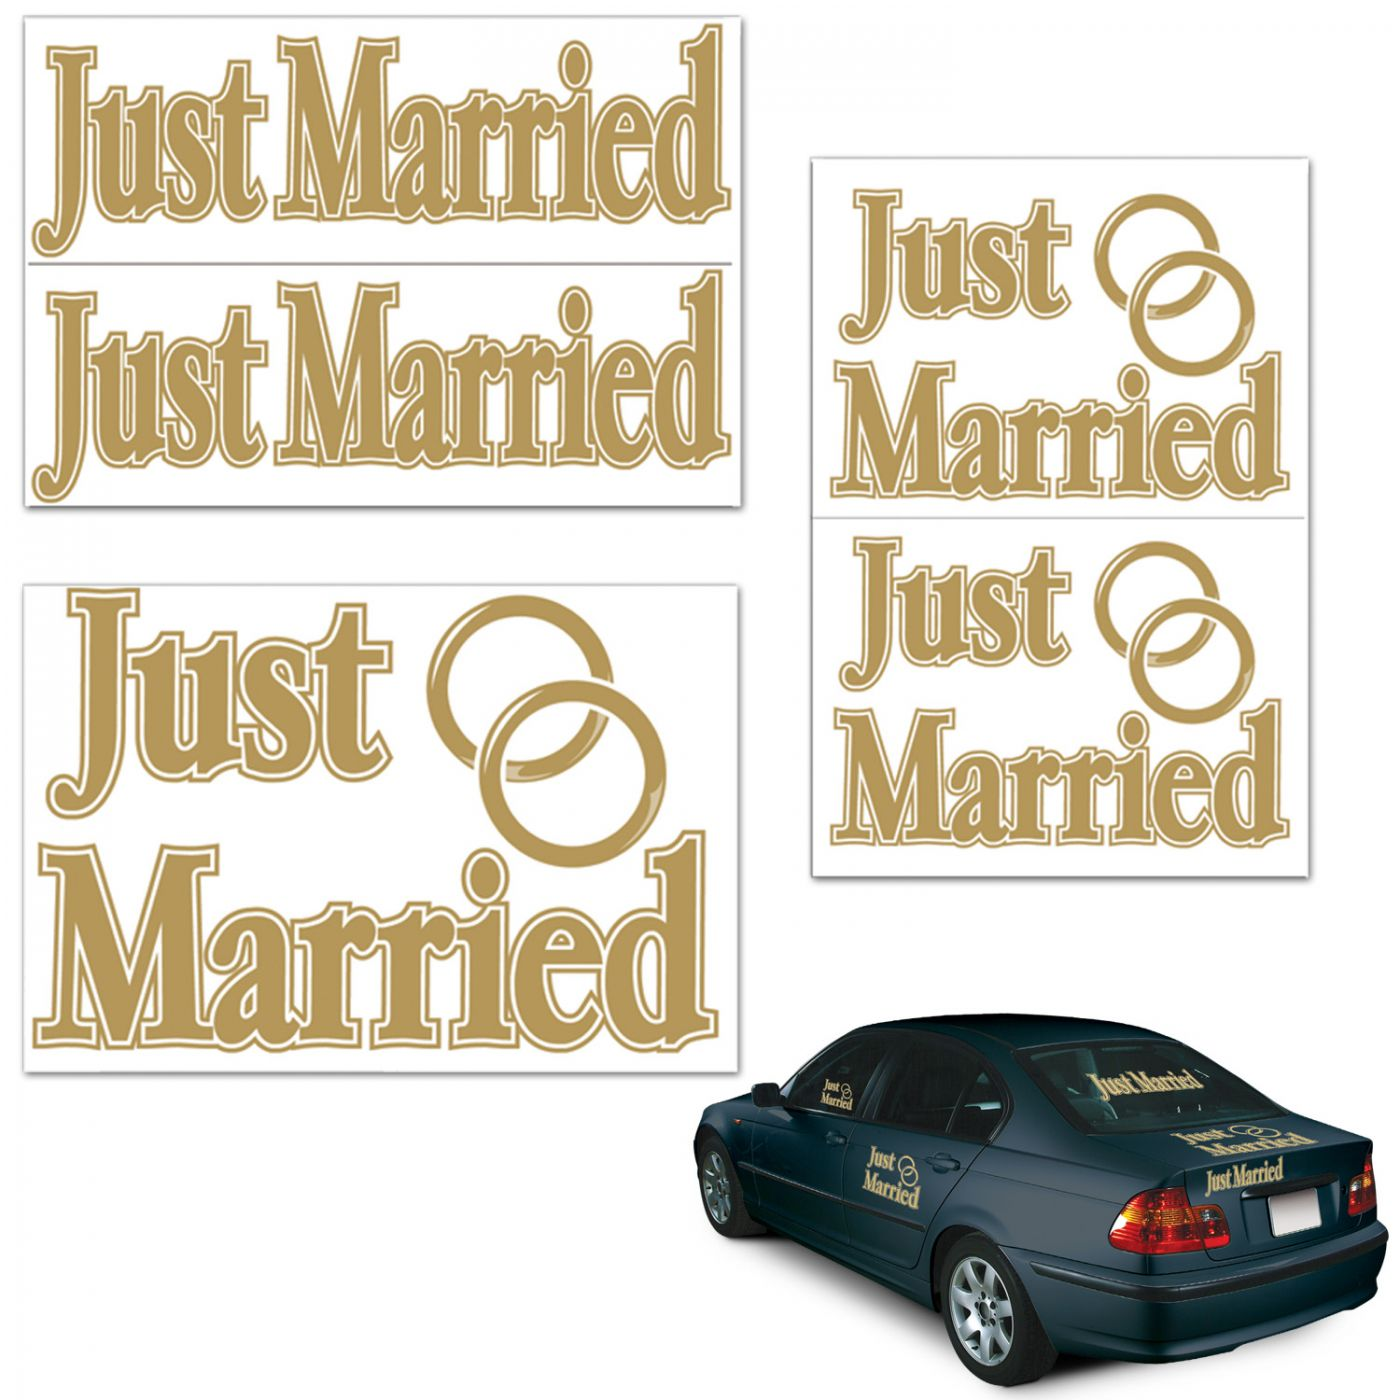 Just Married Auto-Clings image